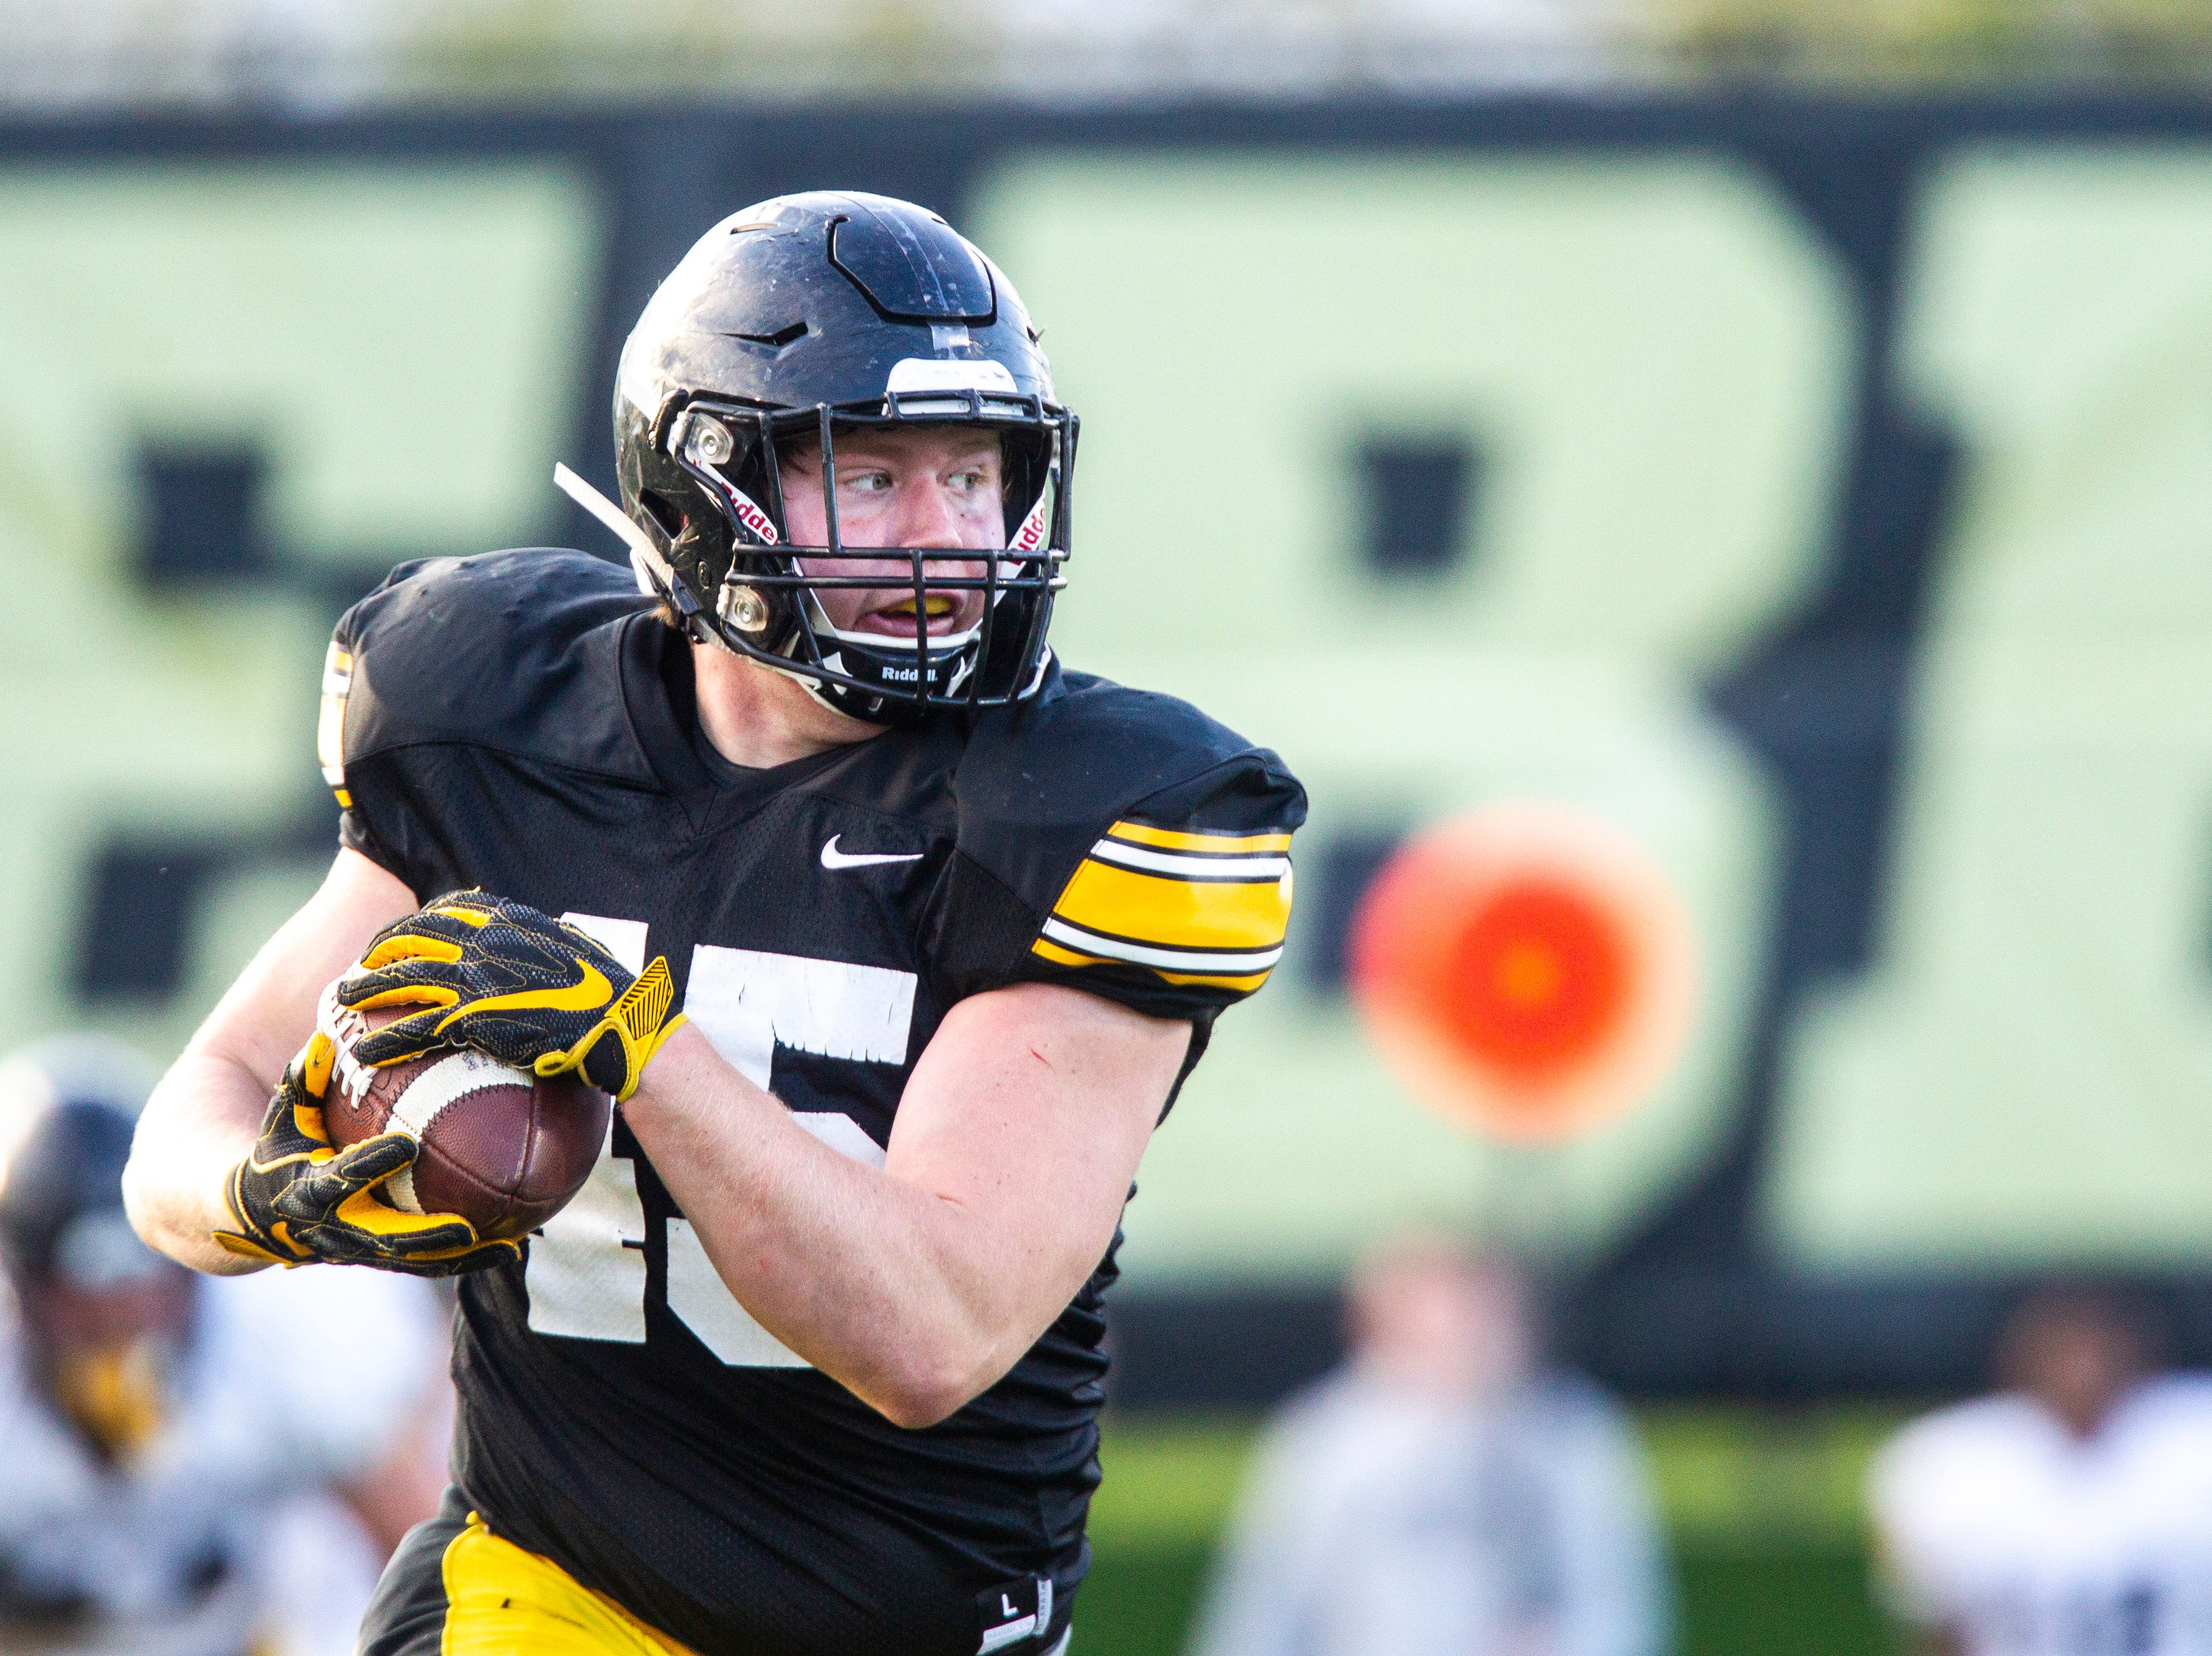 Iowa fullback Joe Ludwig (45) catches a pass during the final spring football practice, Friday, April 26, 2019, at the University of Iowa outdoor practice facility in Iowa City, Iowa.